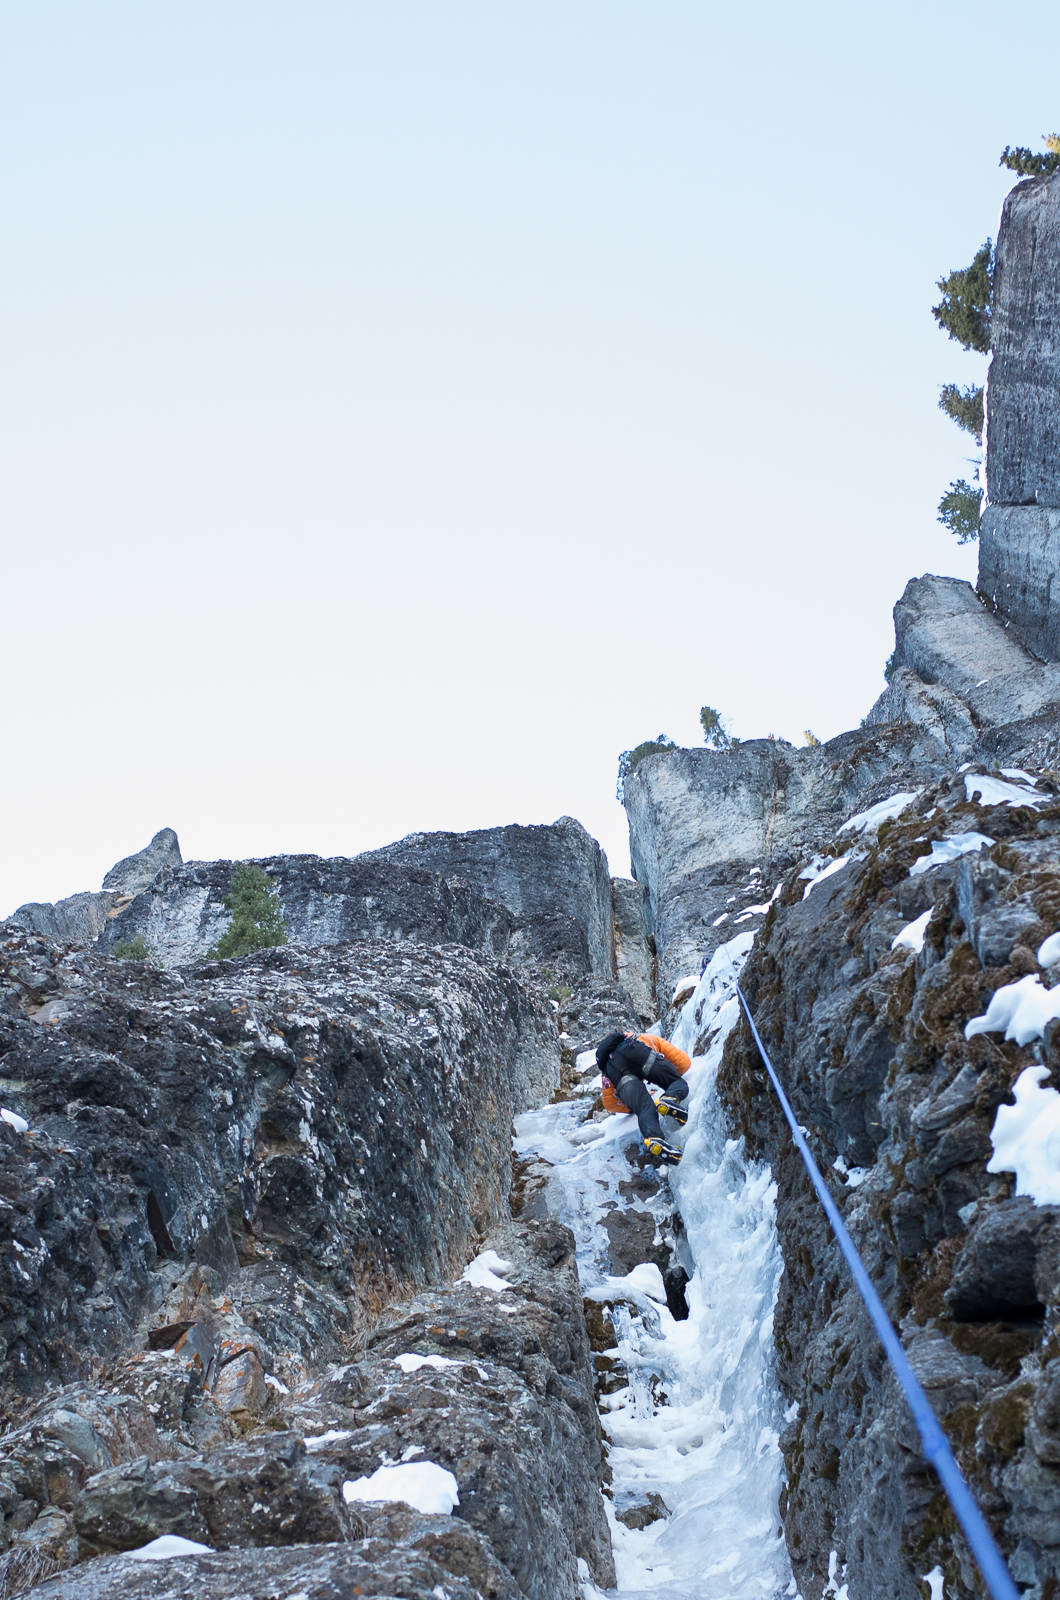 Oli, on one of the steep ice sections, headed for the chimneys.